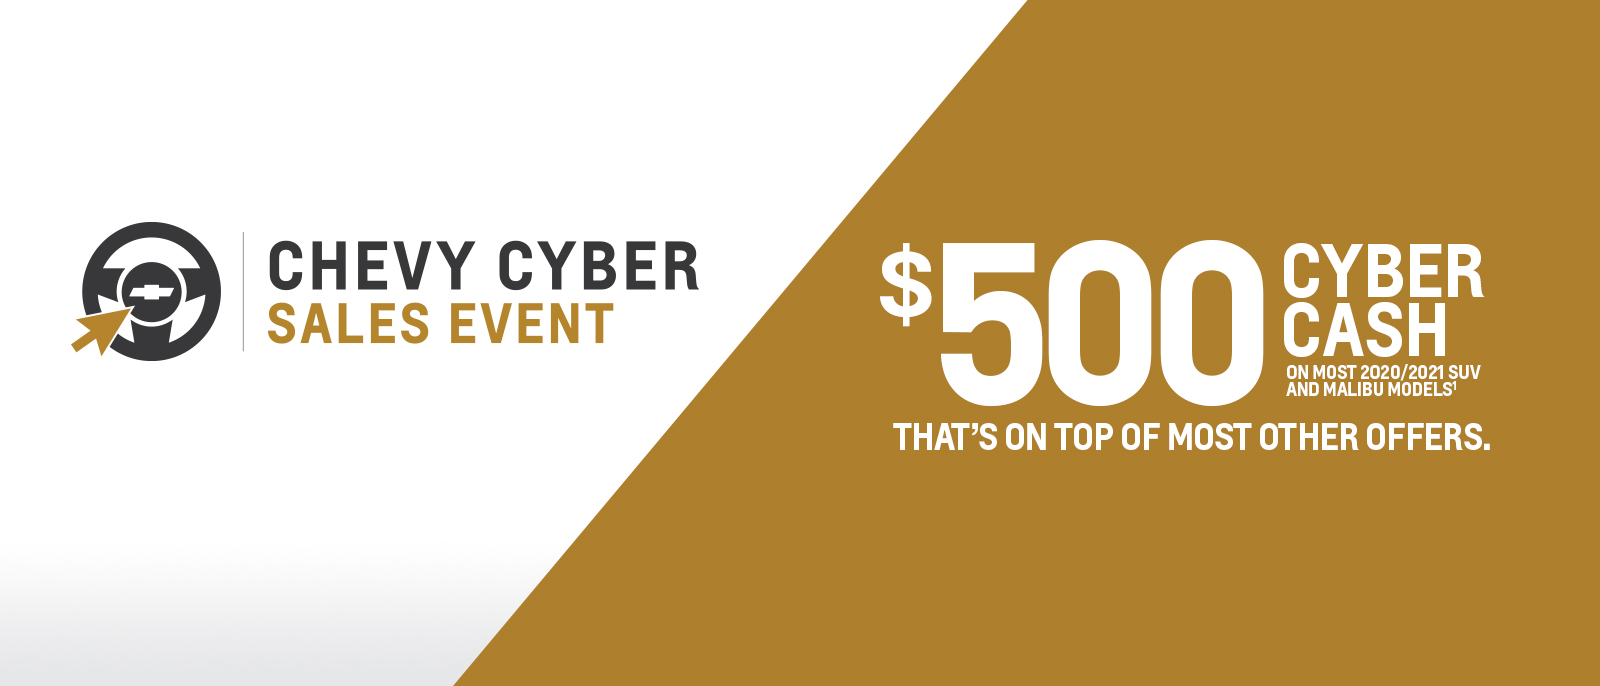 Cyber Sale Event - $500 CYBER CASH